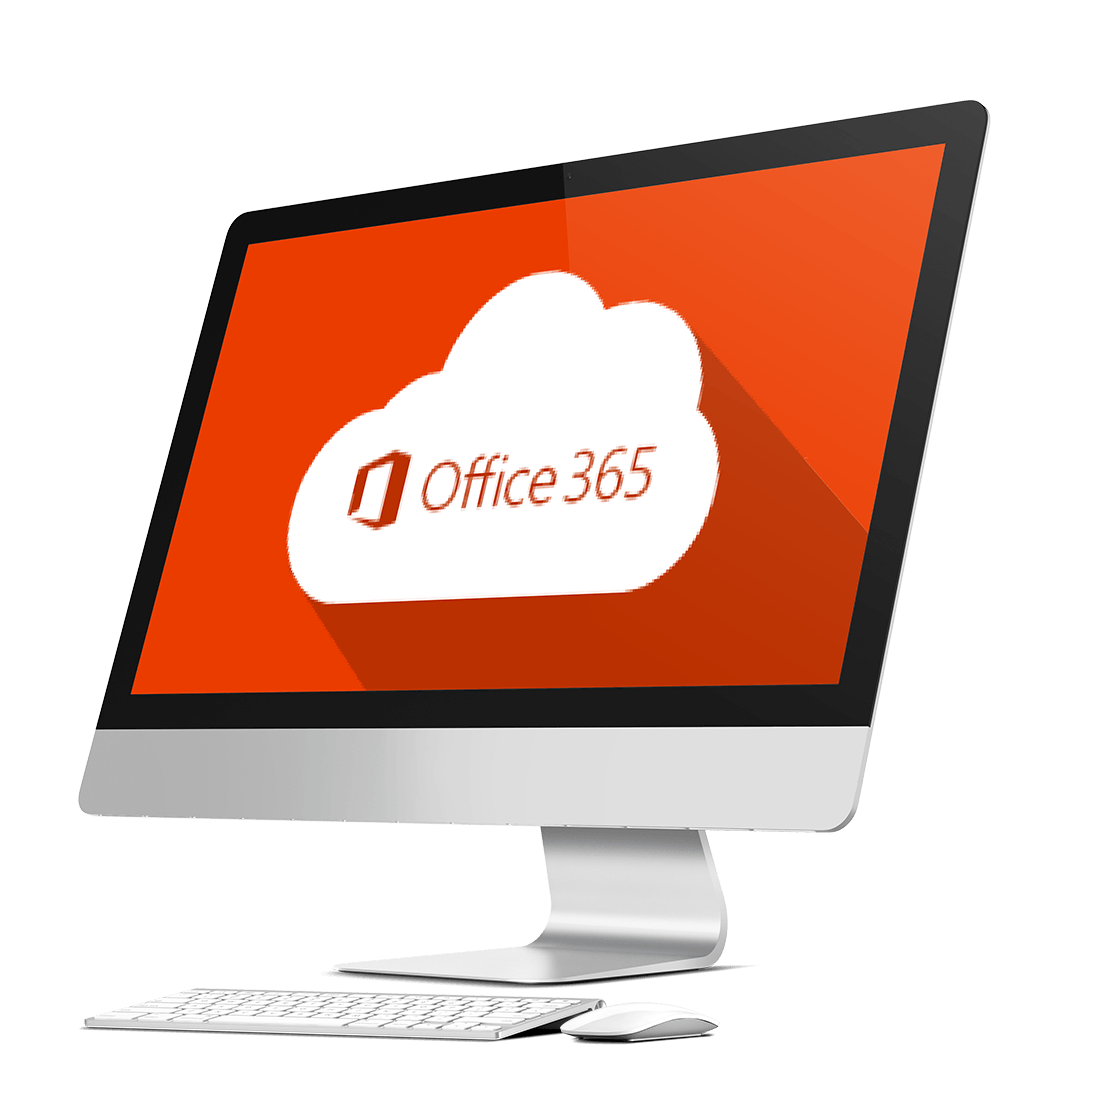 Cloud - Office 365 - Ecobite